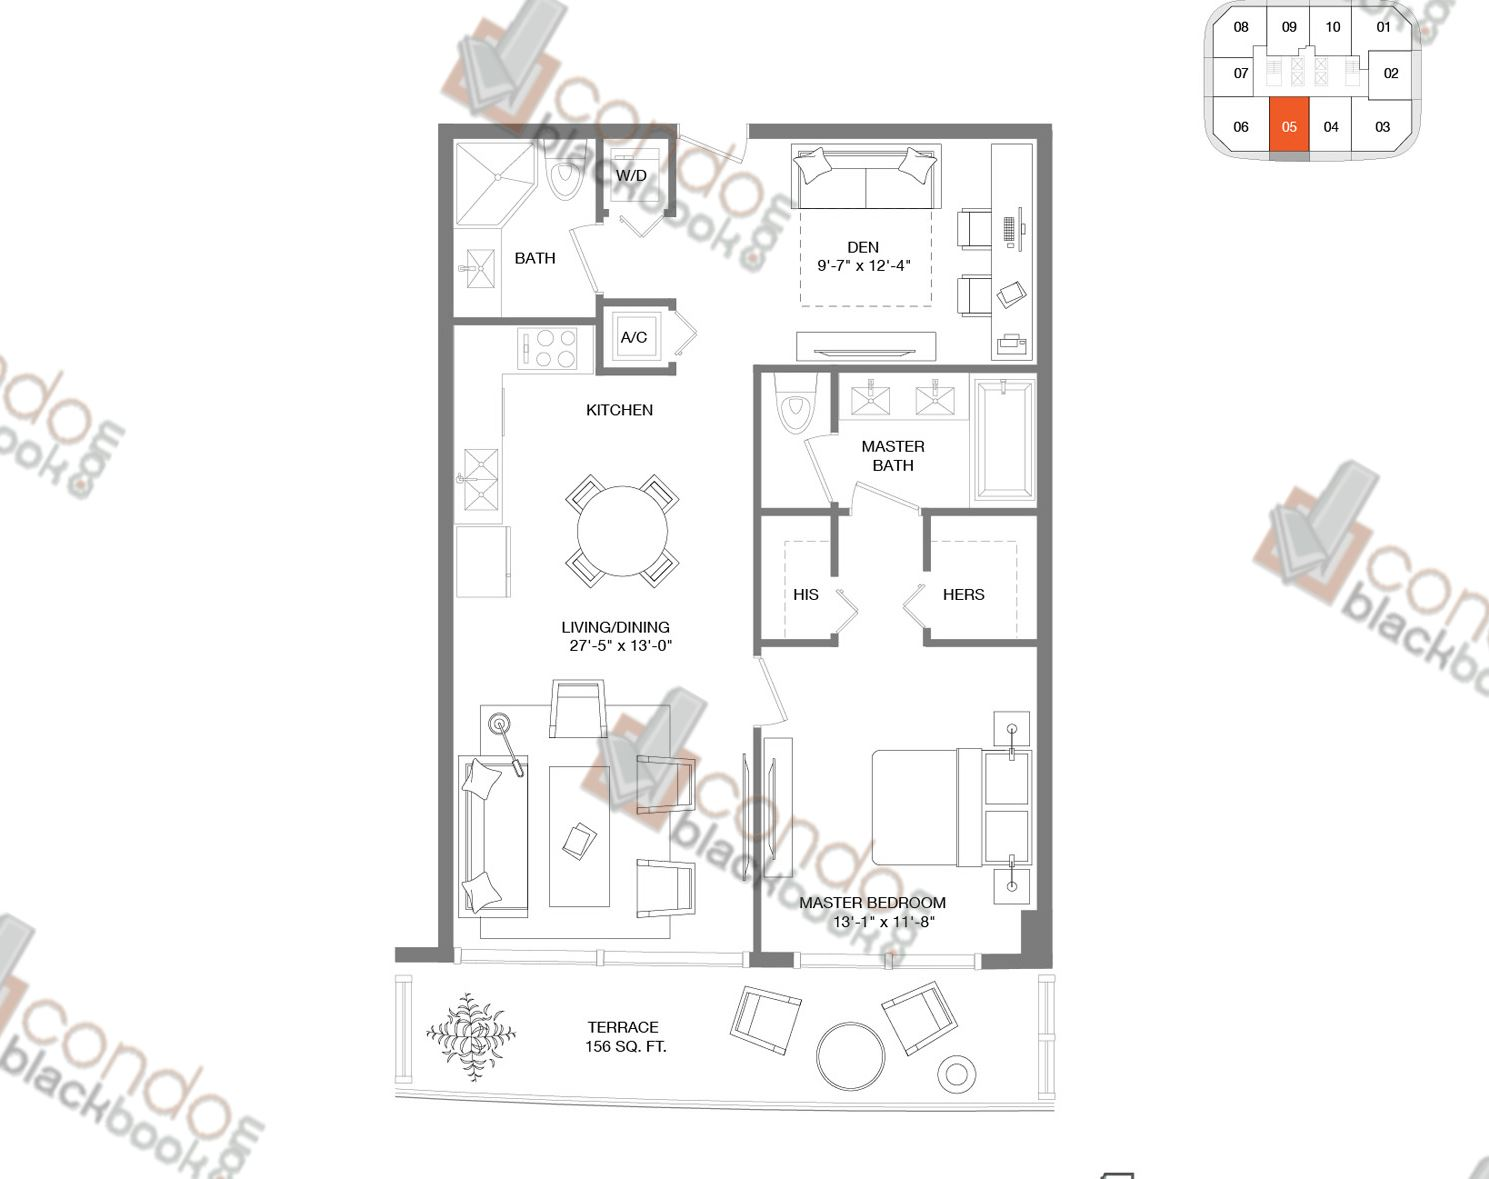 Floor plan for Brickell Heights East Tower Brickell Miami, model Residence 05, line 05, 1/2+DEN bedrooms, 965 sq ft